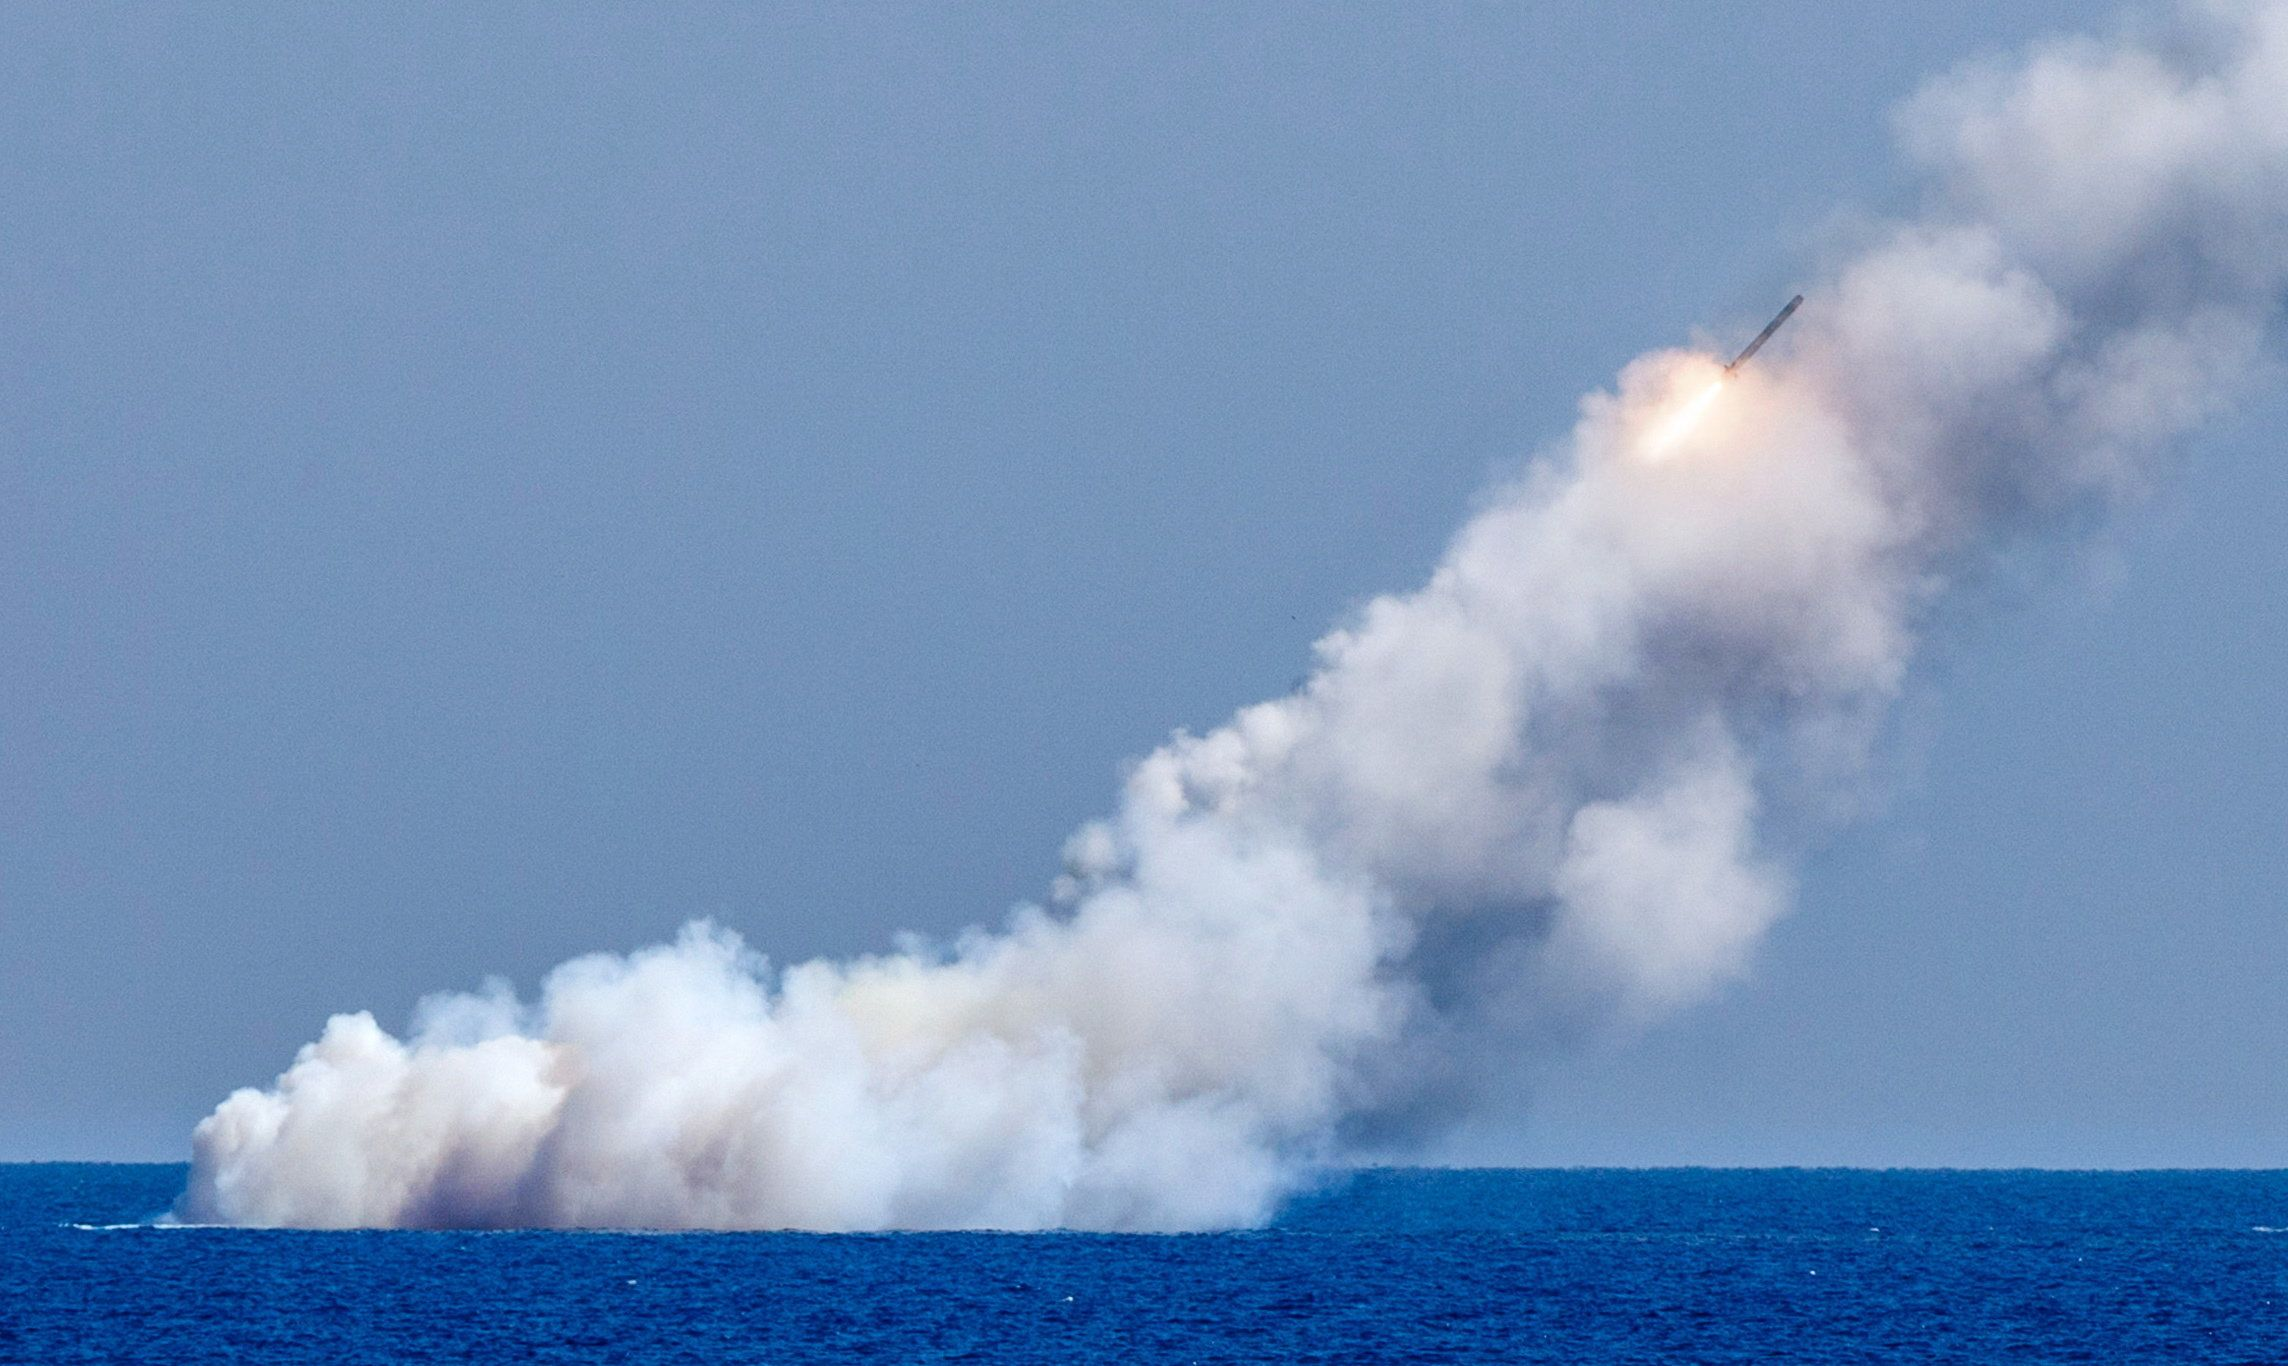 MEDITERRANEAN SEA - SEPTEMBER 14, 2017: Russia's Veliky Novgorod and Kolpino submarines fire the Kalibr cruise missiles from the eastern Mediterranean to hit Islamic State militants' bases in Syria. Vadim Savitsky/Russian Defence Ministry Press Office/TASS (Photo by Vadim Savitsky\TASS via Getty Images)